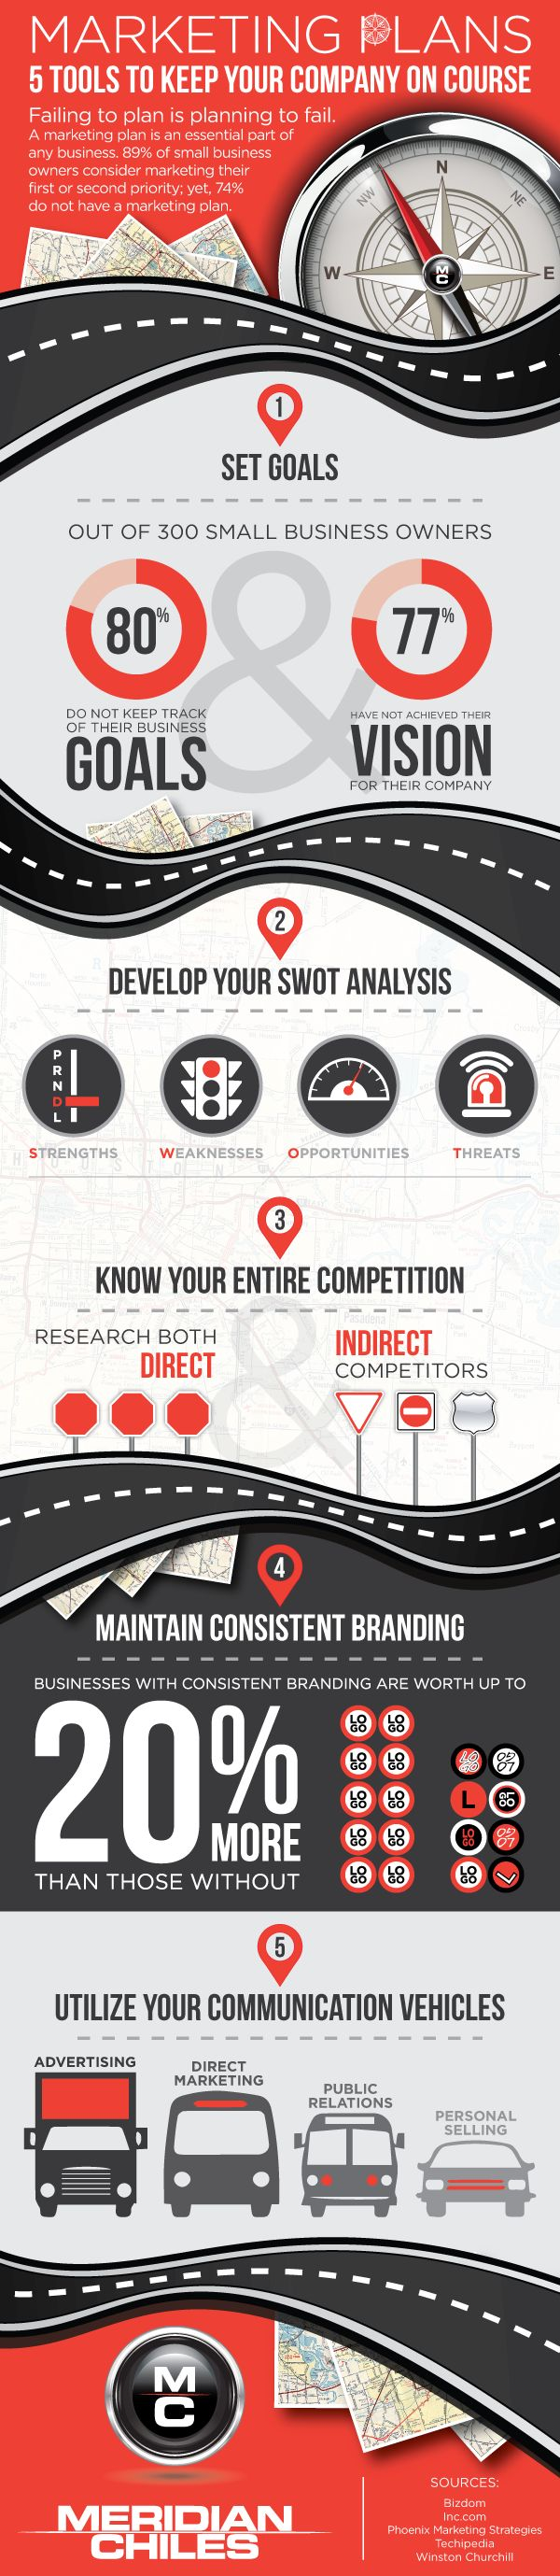 Marketing Plans: 5 Tools to Keep Your Company On Course  #Infographic #Marketing #Tools